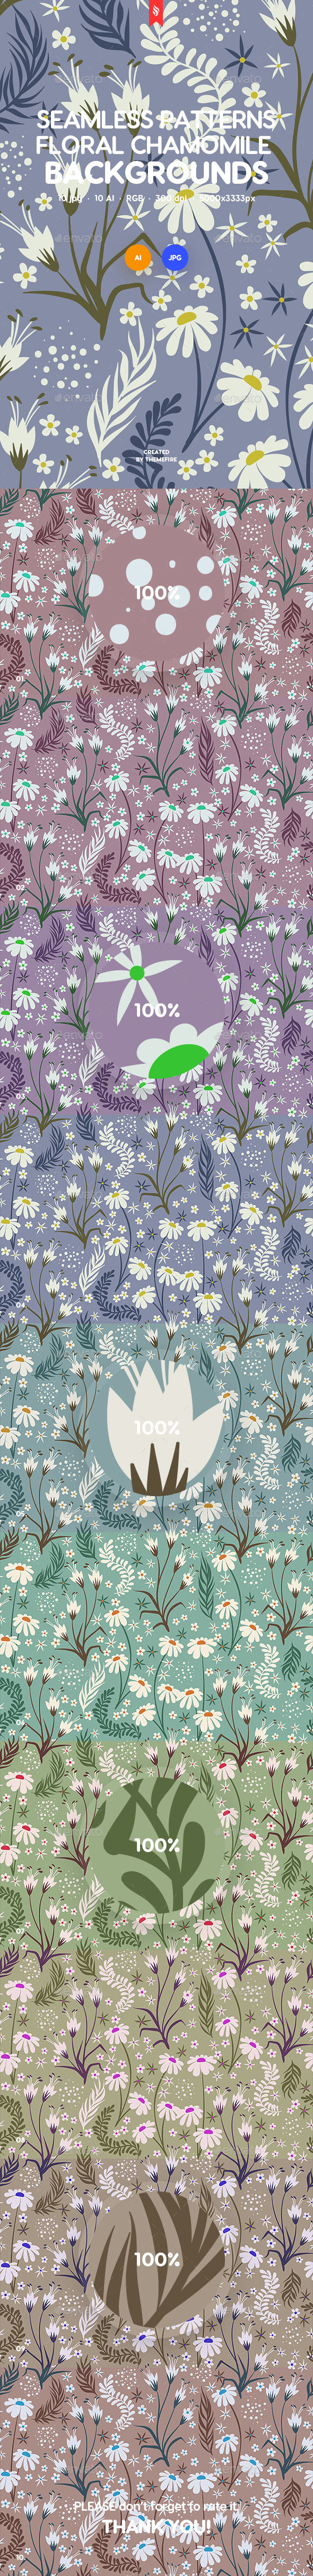 Seamless Patterns Floral Chamomile Backgrounds - Patterns Backgrounds